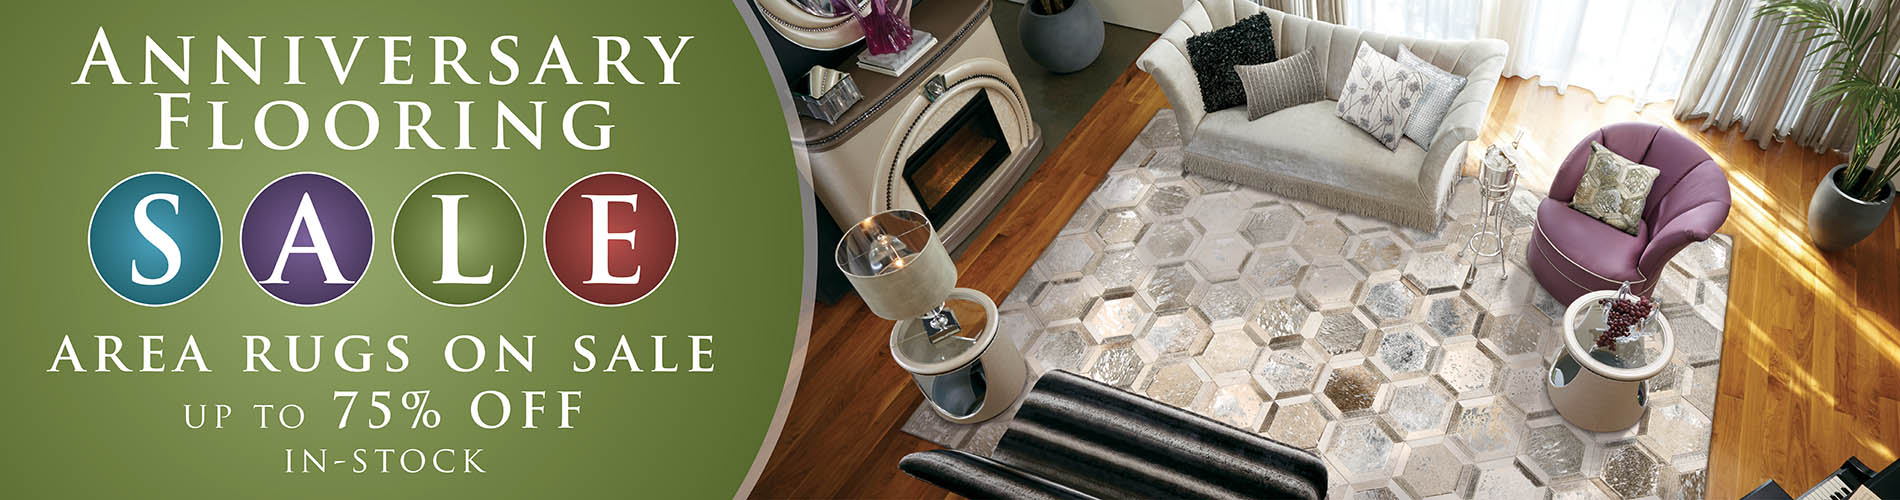 Anniversary Flooring Sale  AREA RUGS ON SALE!  Up To 75% OFF  In-Stock